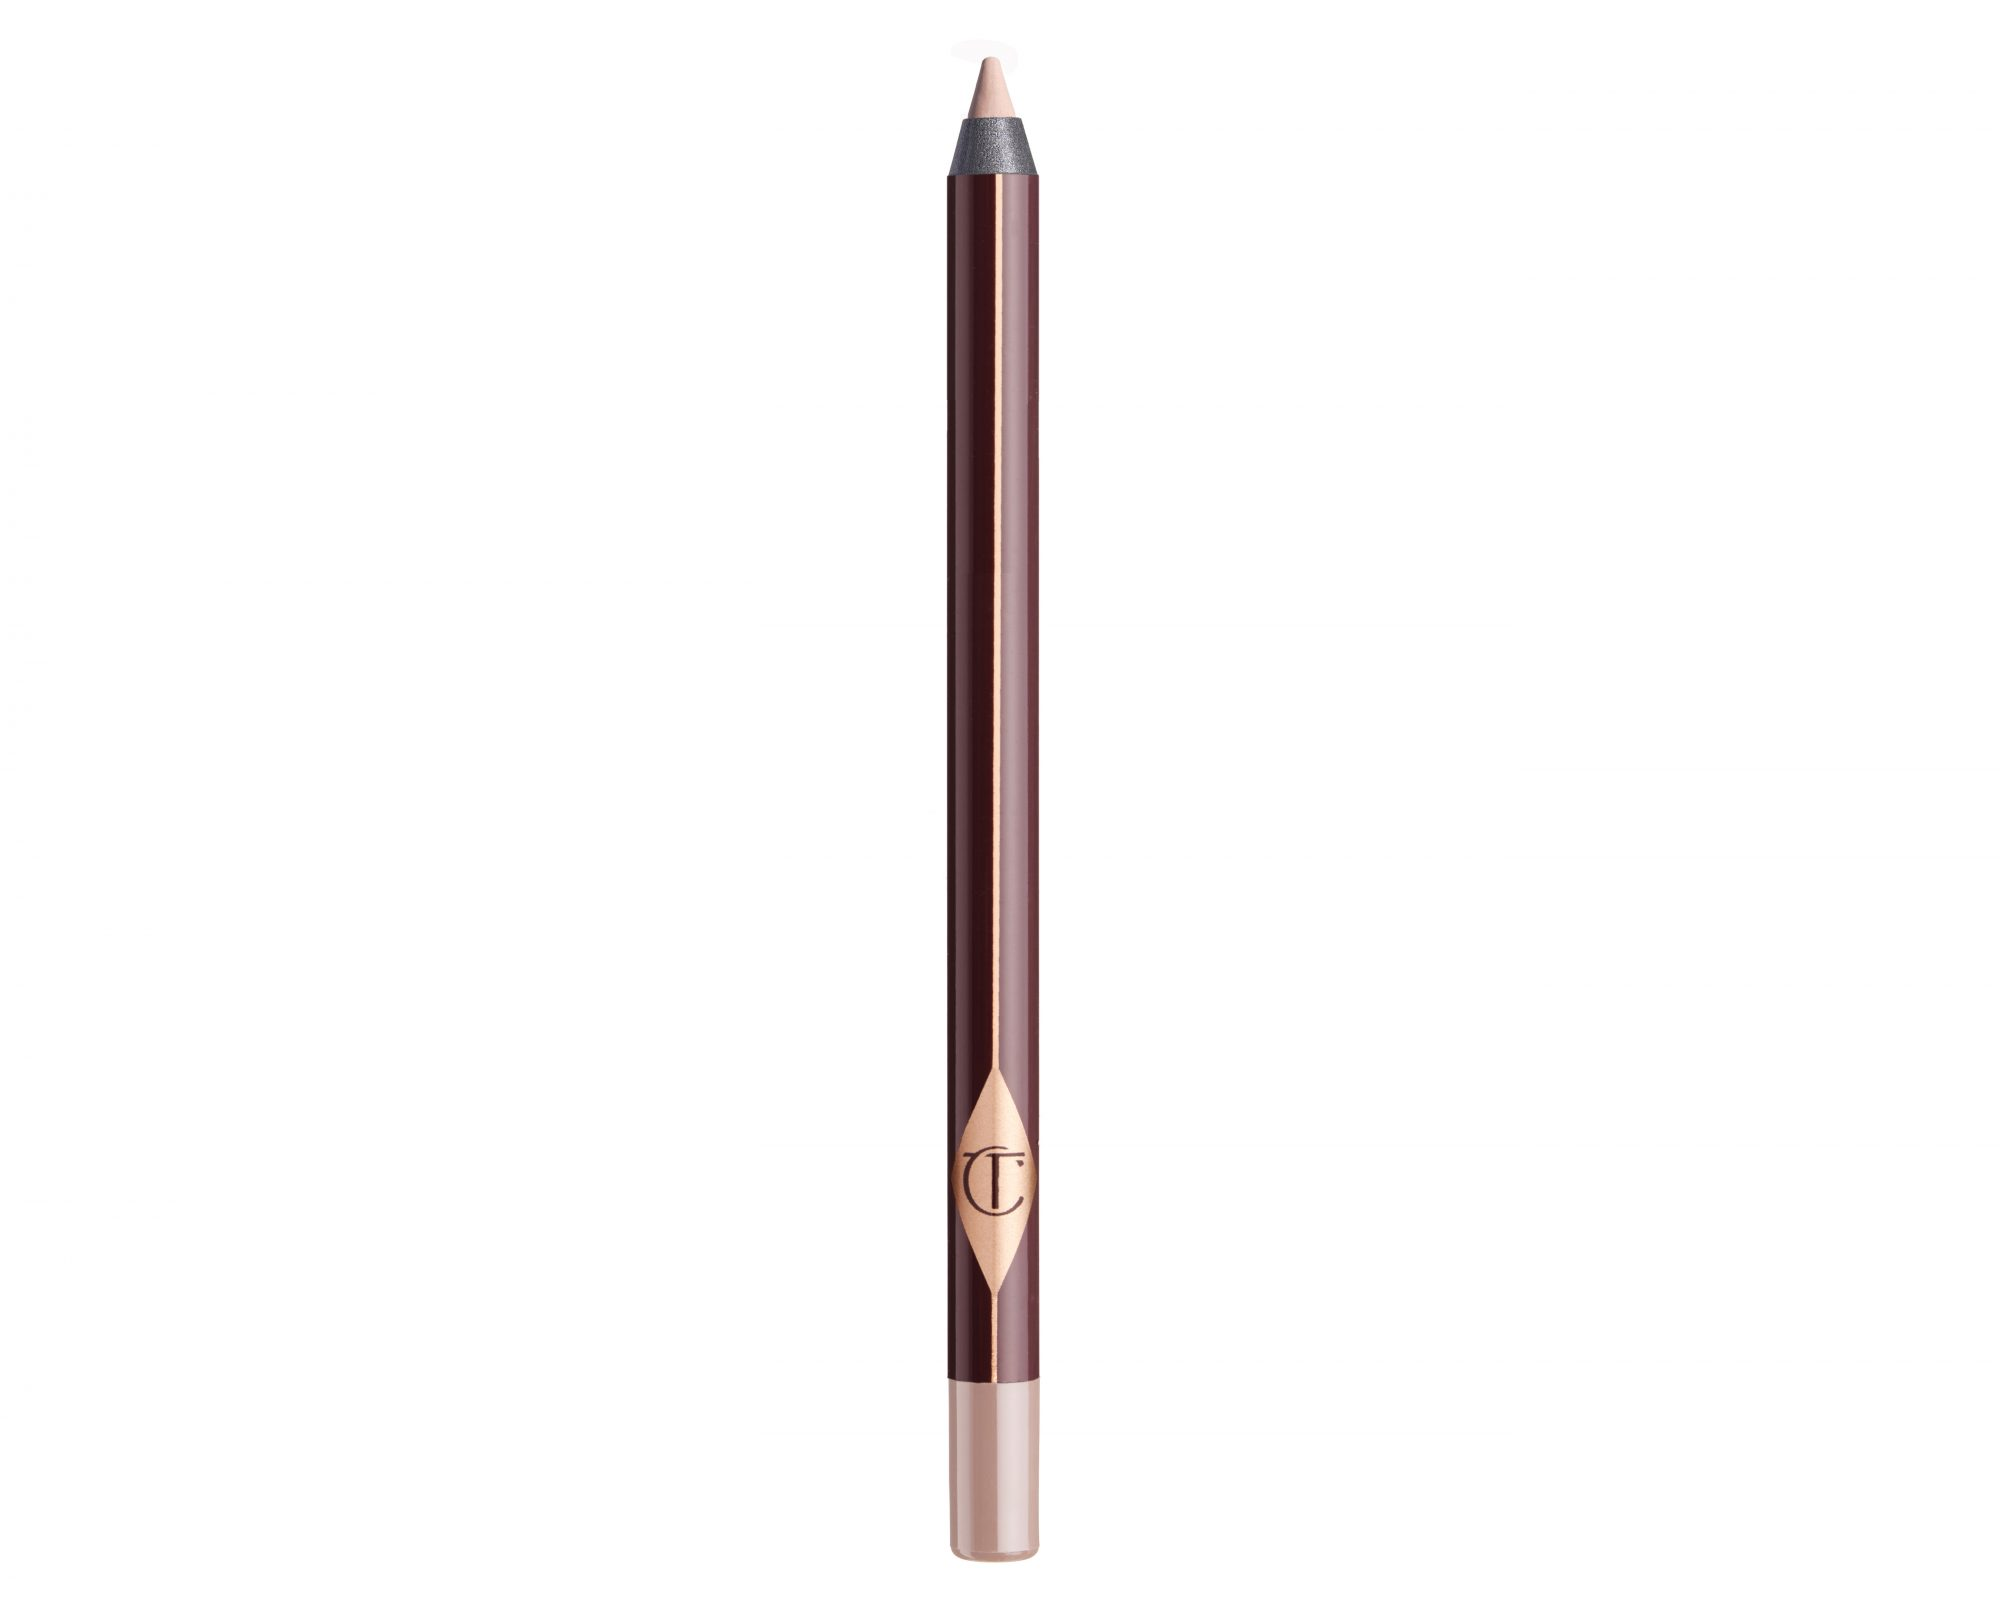 Charlotte Tilbury Rock 'N' Kohl Iconic Liquid Eye Pencil in Eye Cheat